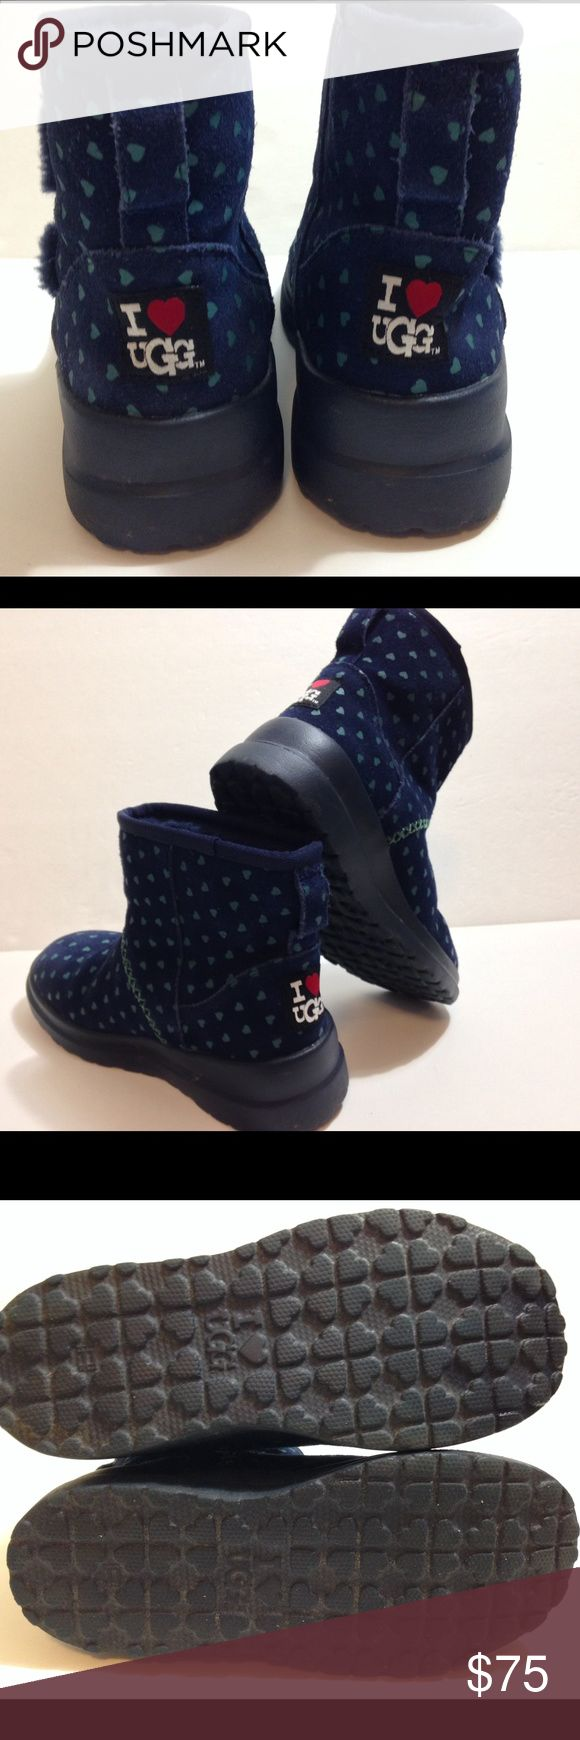 Ugg I Heart Ugg Heart Kisses Boots Ugg I Heart Ugg Heart Kisses Boots.  Navy blue with light blue hearts all over.  These are in fantastic condition!  No signs of wear, other than extremely minor on soles.  Worn only twice. UGG Shoes Winter & Rain Boots